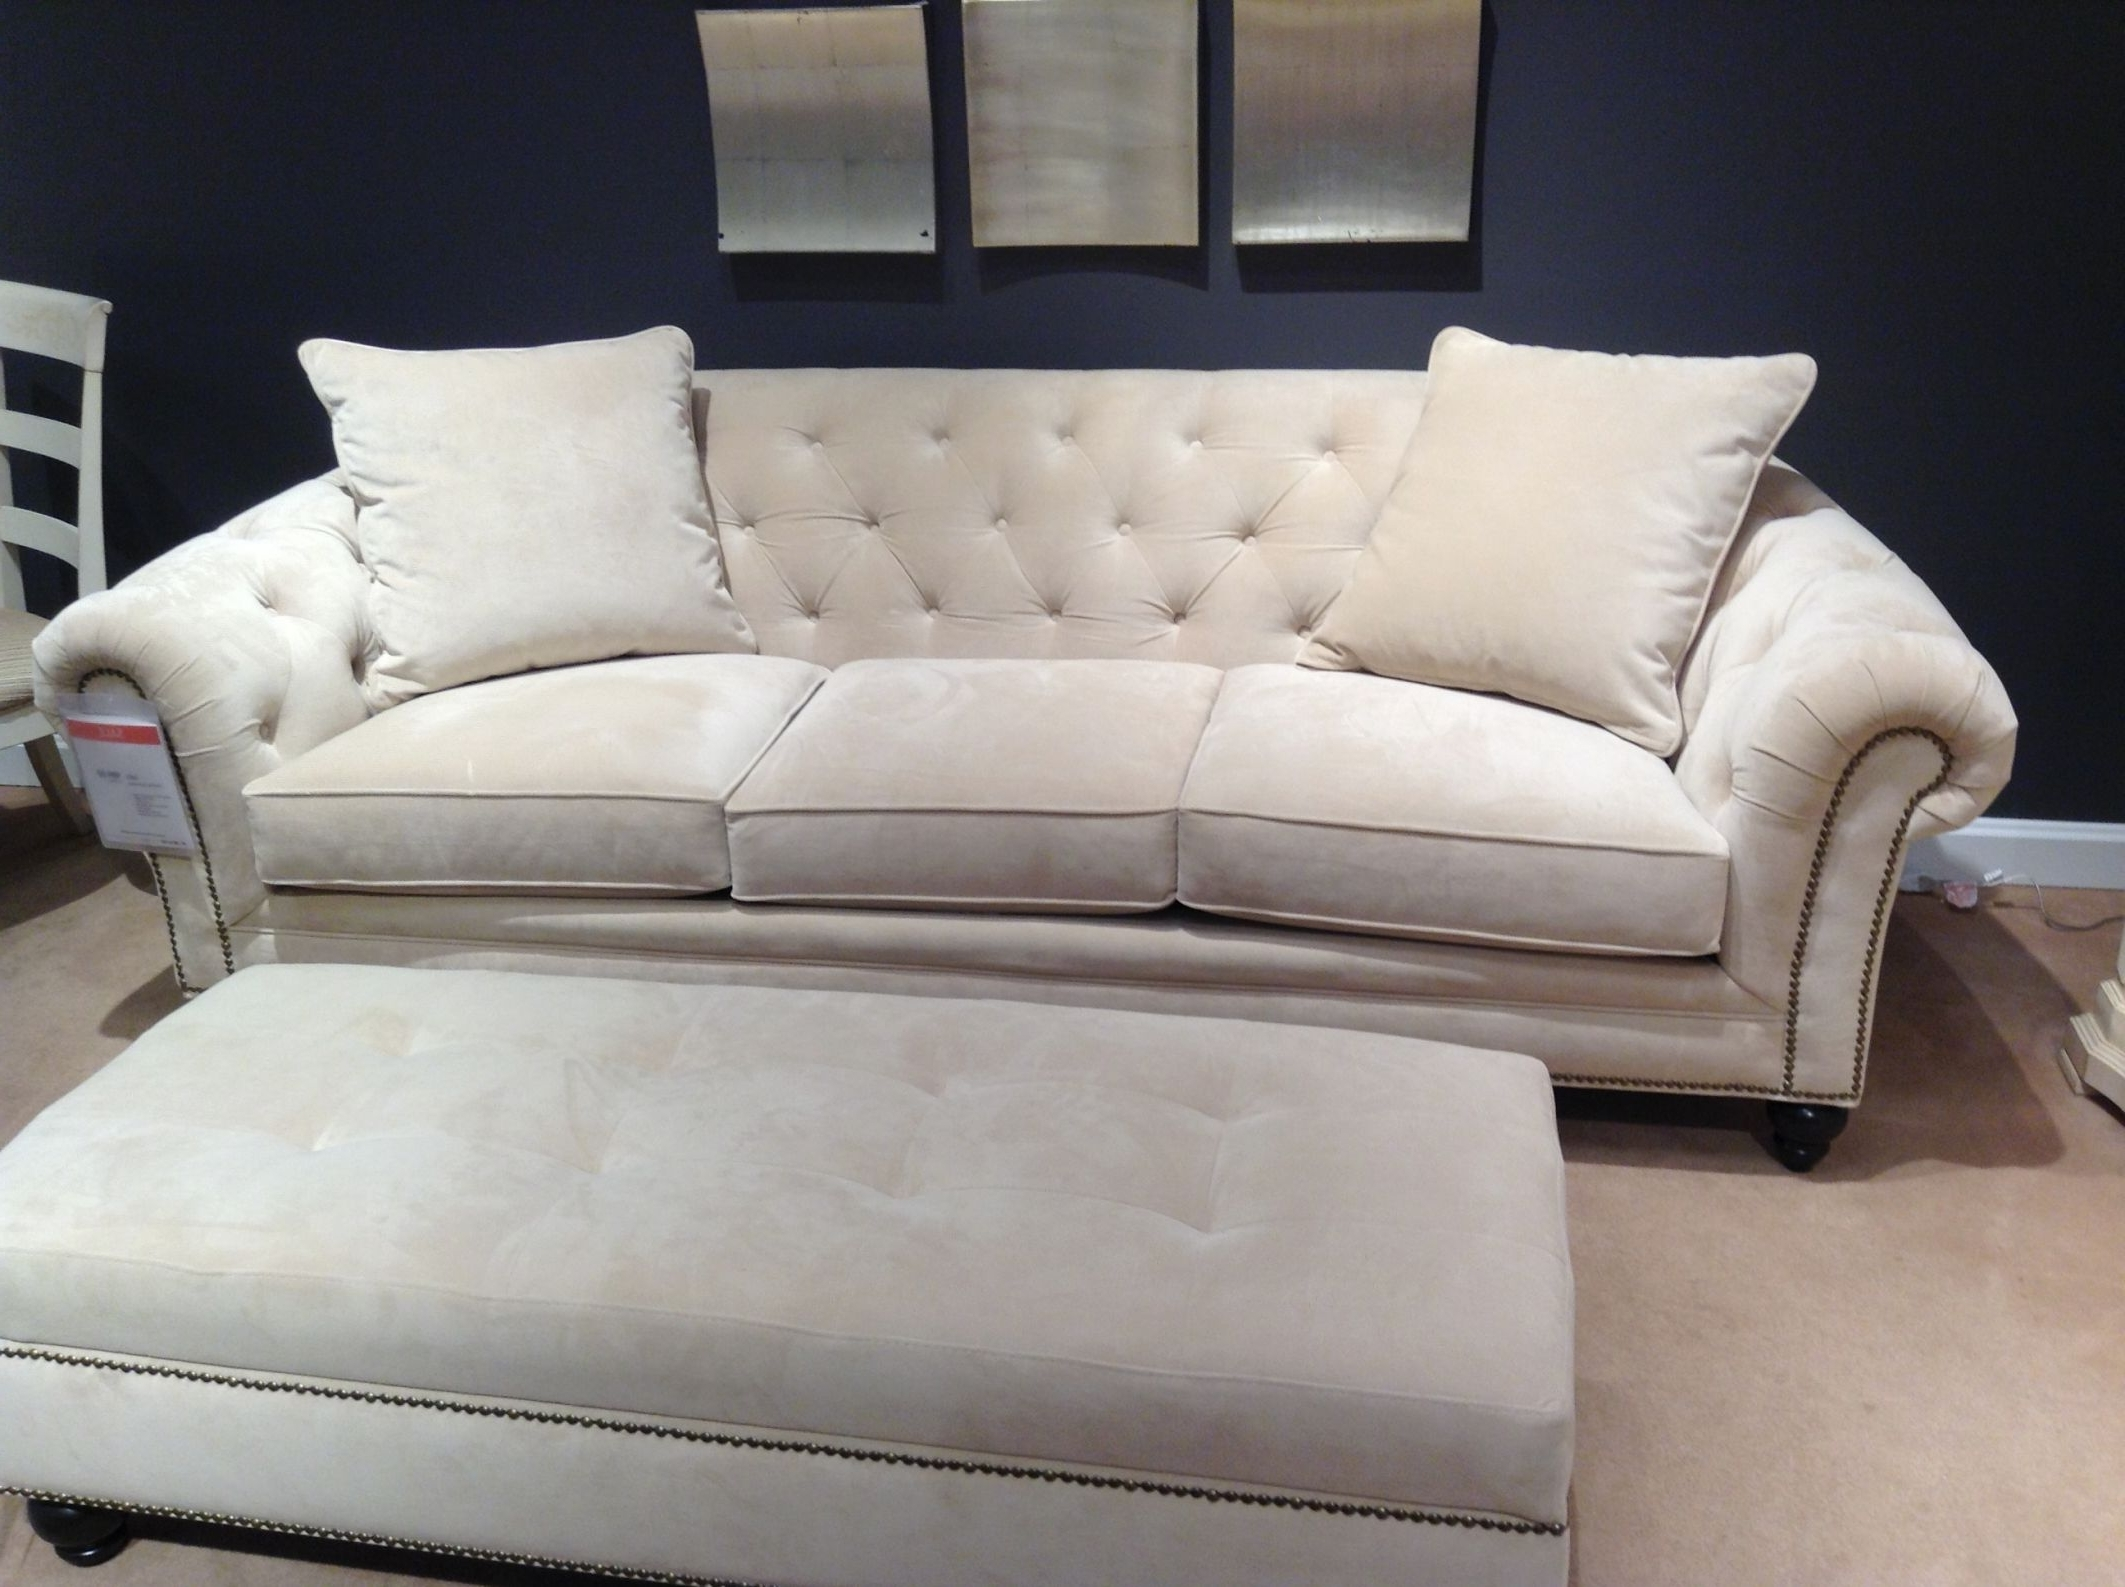 Chaise With Macys Sofas (View 5 of 15)